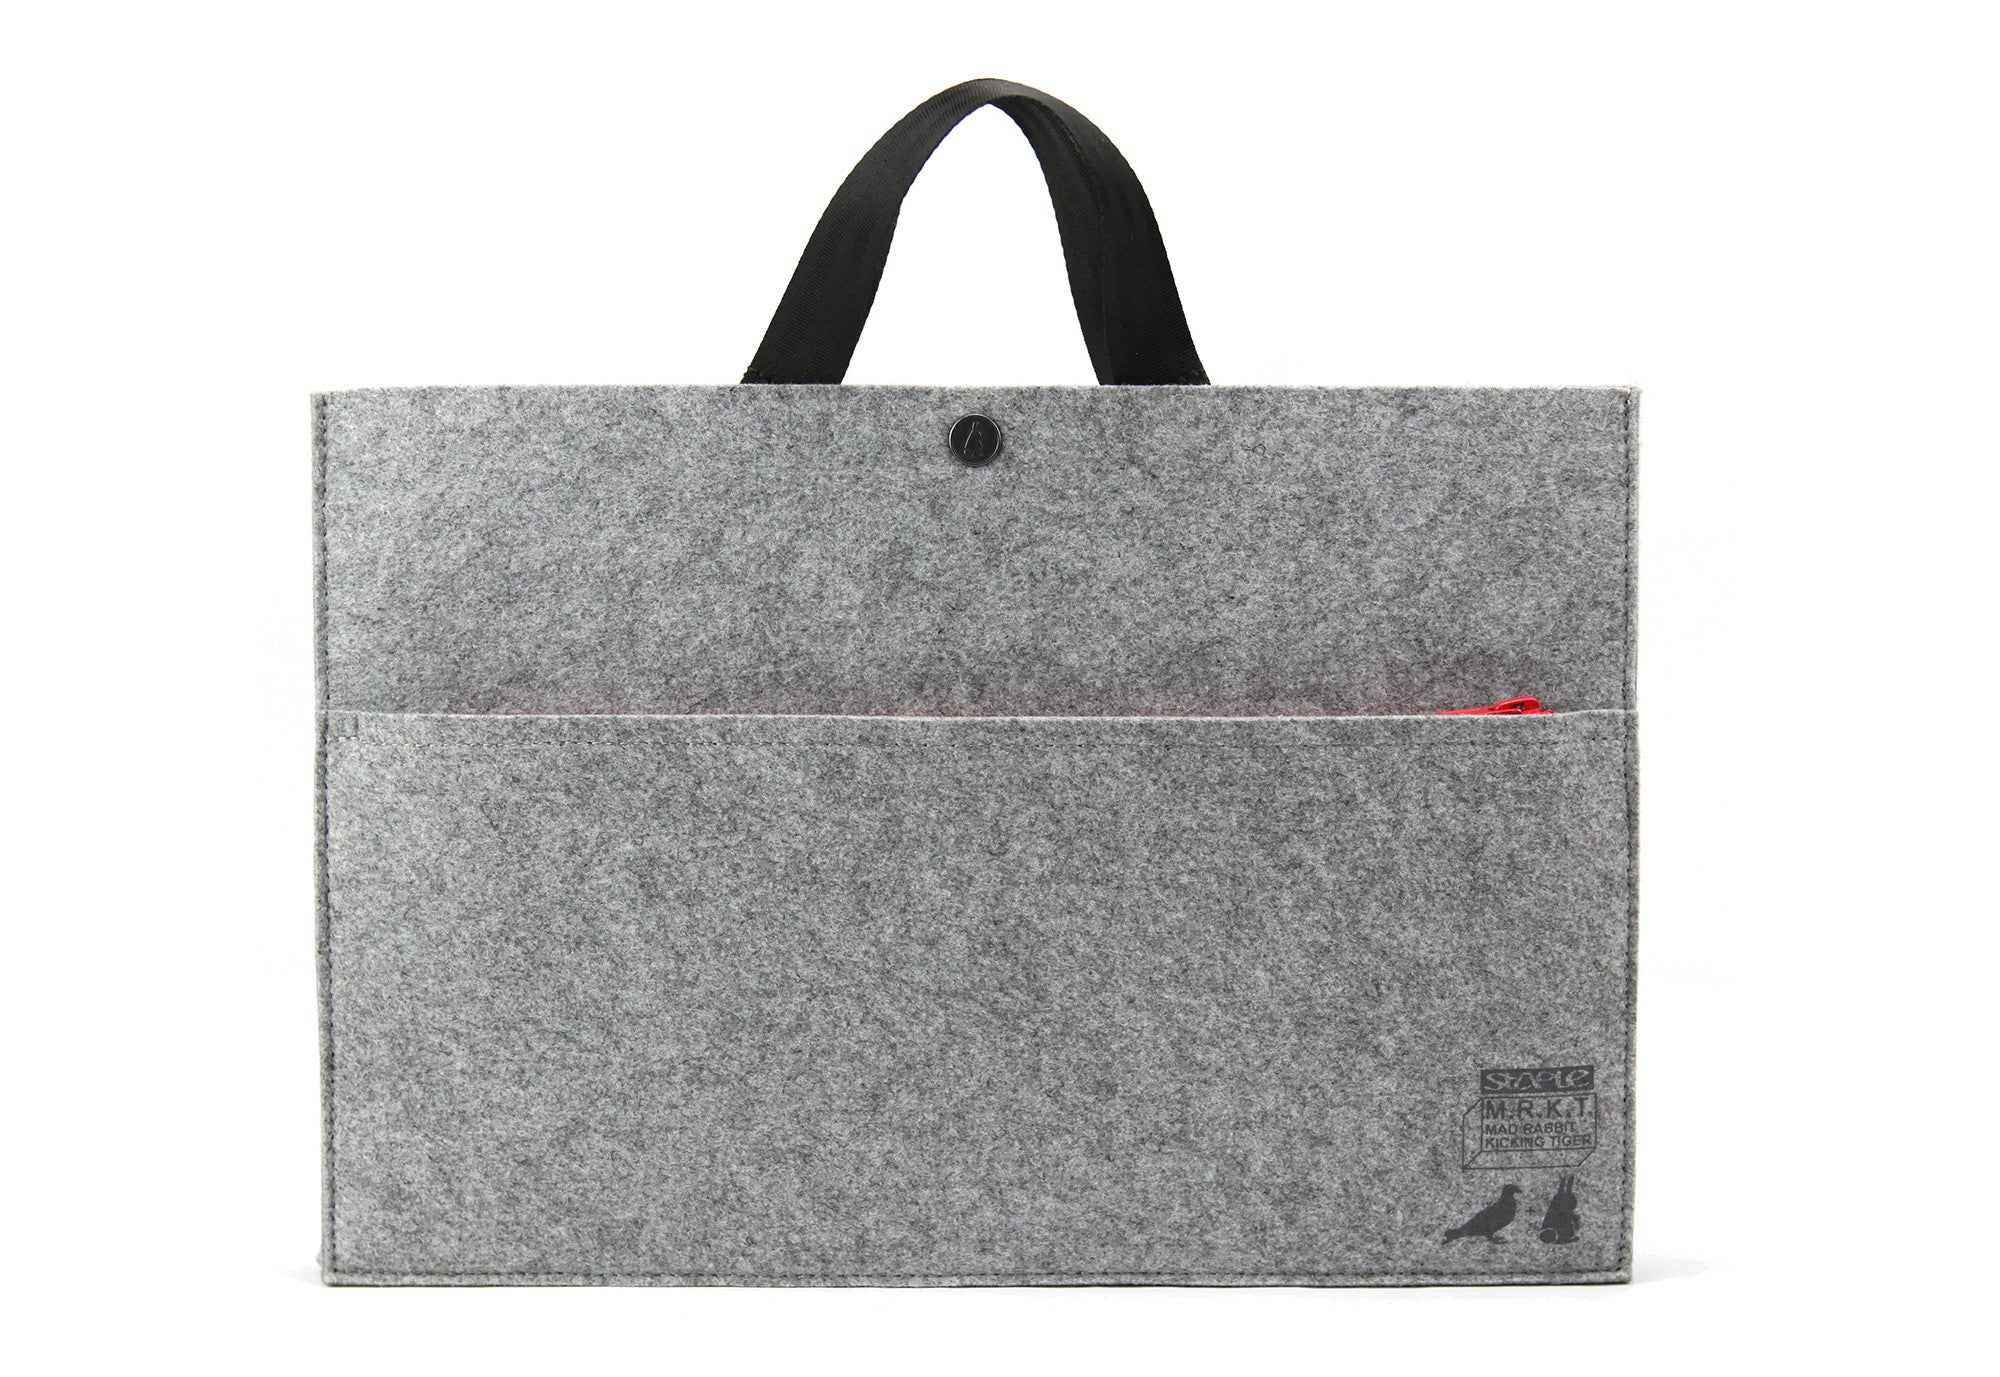 M.R.K.T. for Staple Pigeon Briefcase - M.R.K.T. - 11